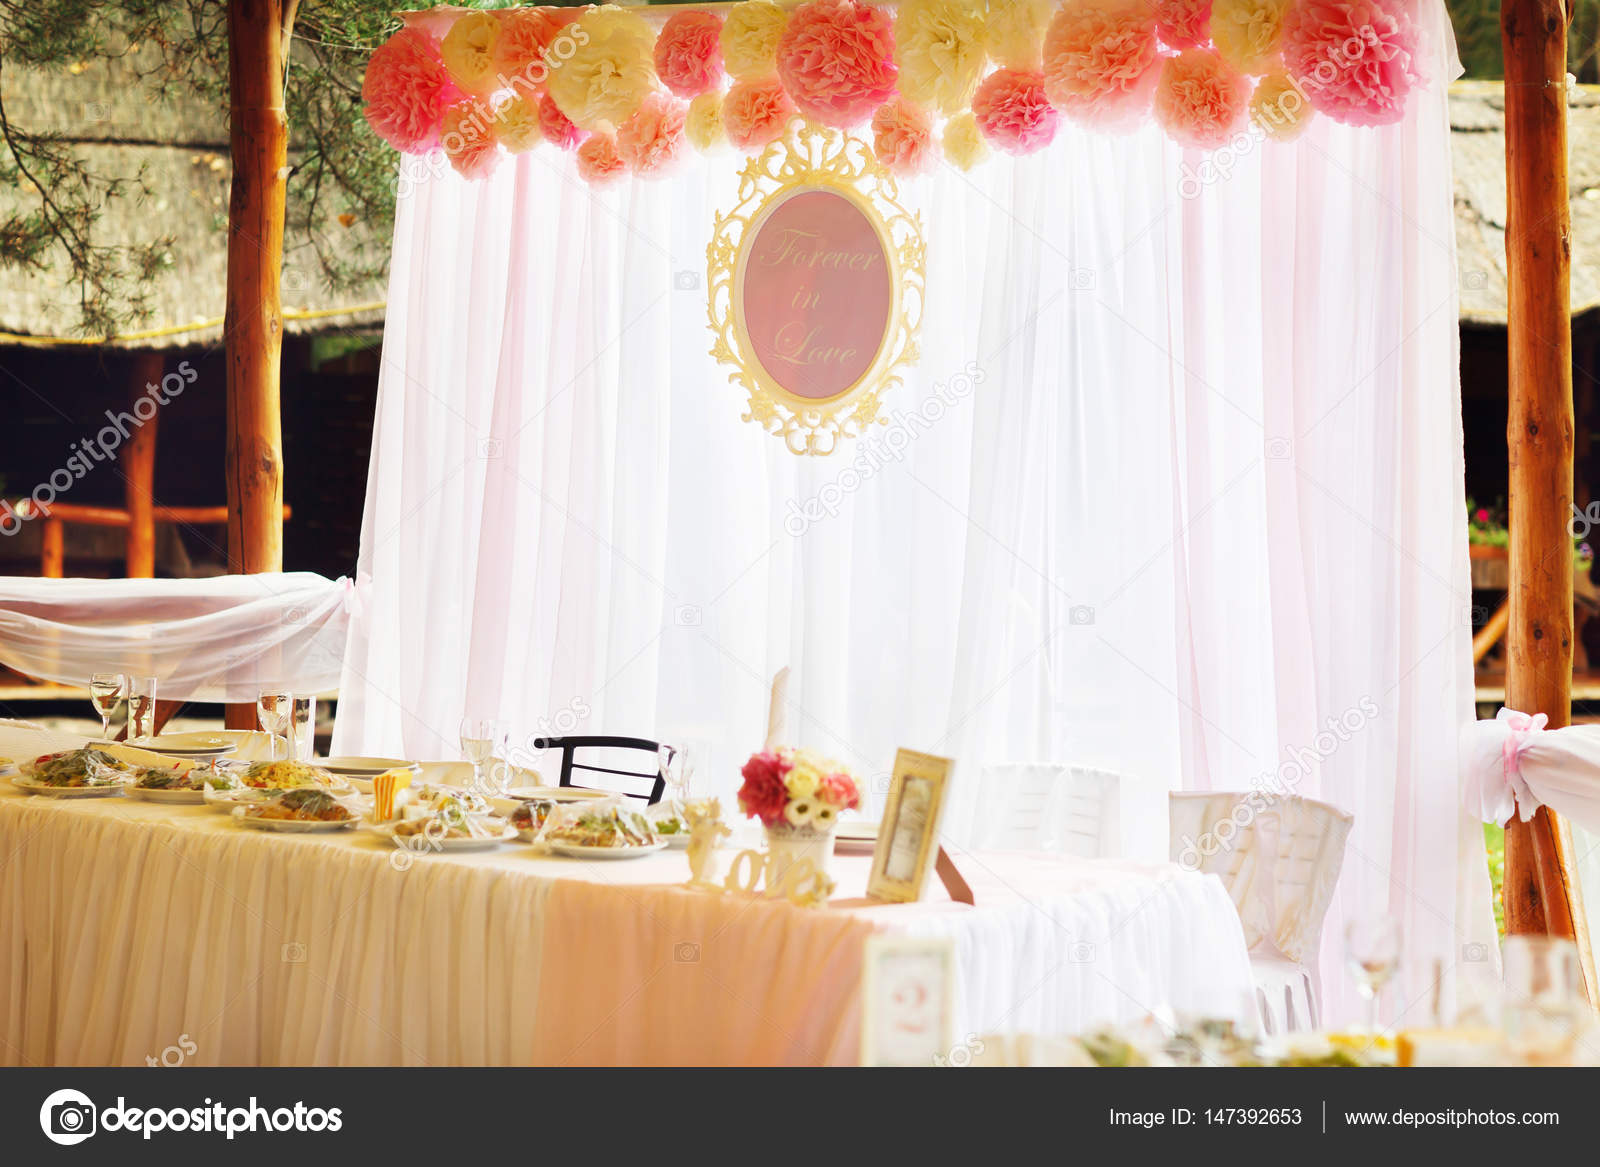 Wedding Table Stands On The Open Air In A Restaurant Stock Photo - Restaurant table stands